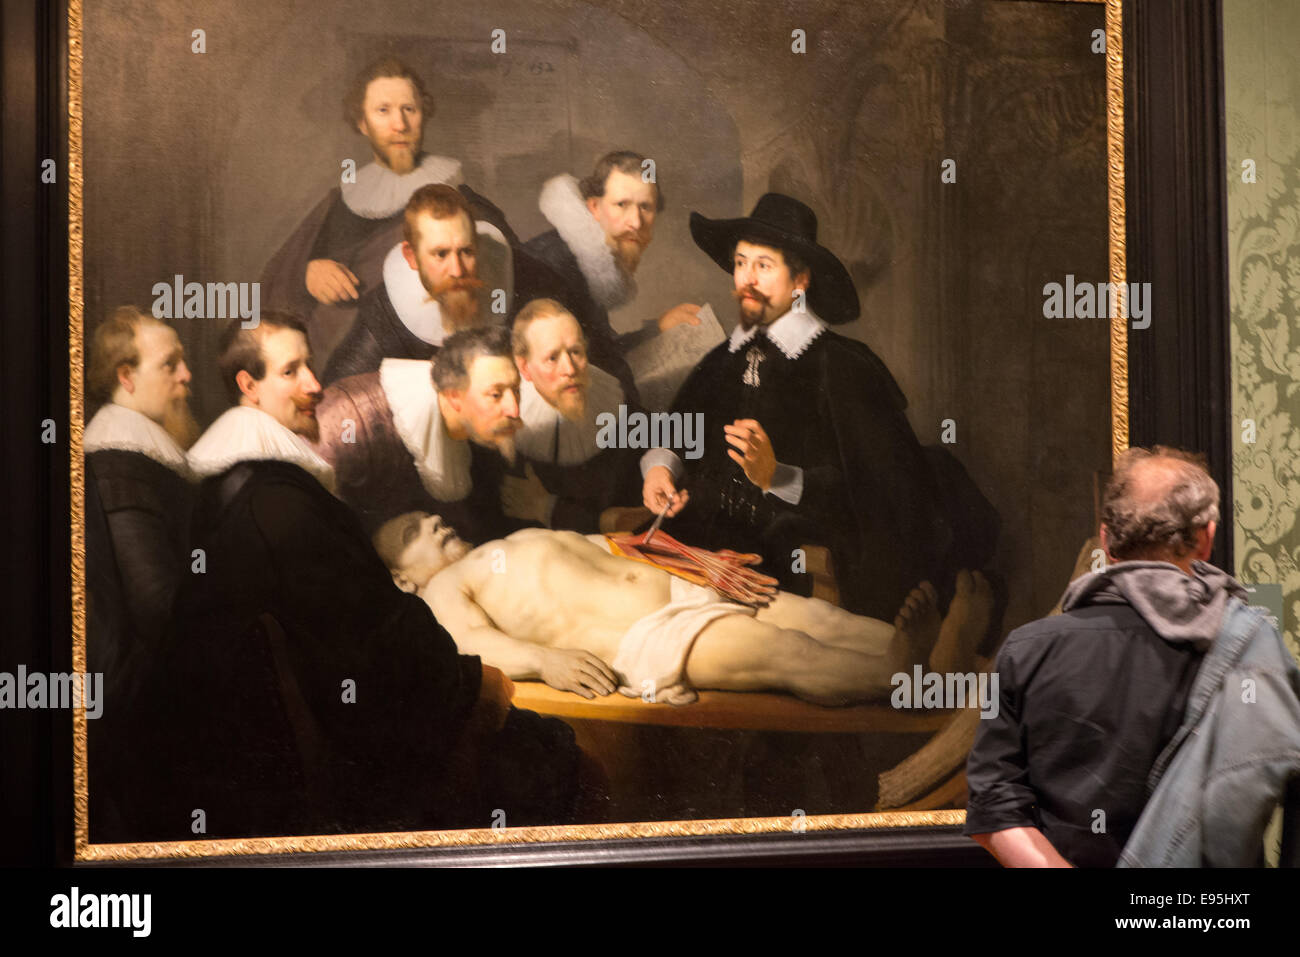 Anatomy Lesson Of Dr Tulp Stock Photos Anatomy Lesson Of Dr Tulp